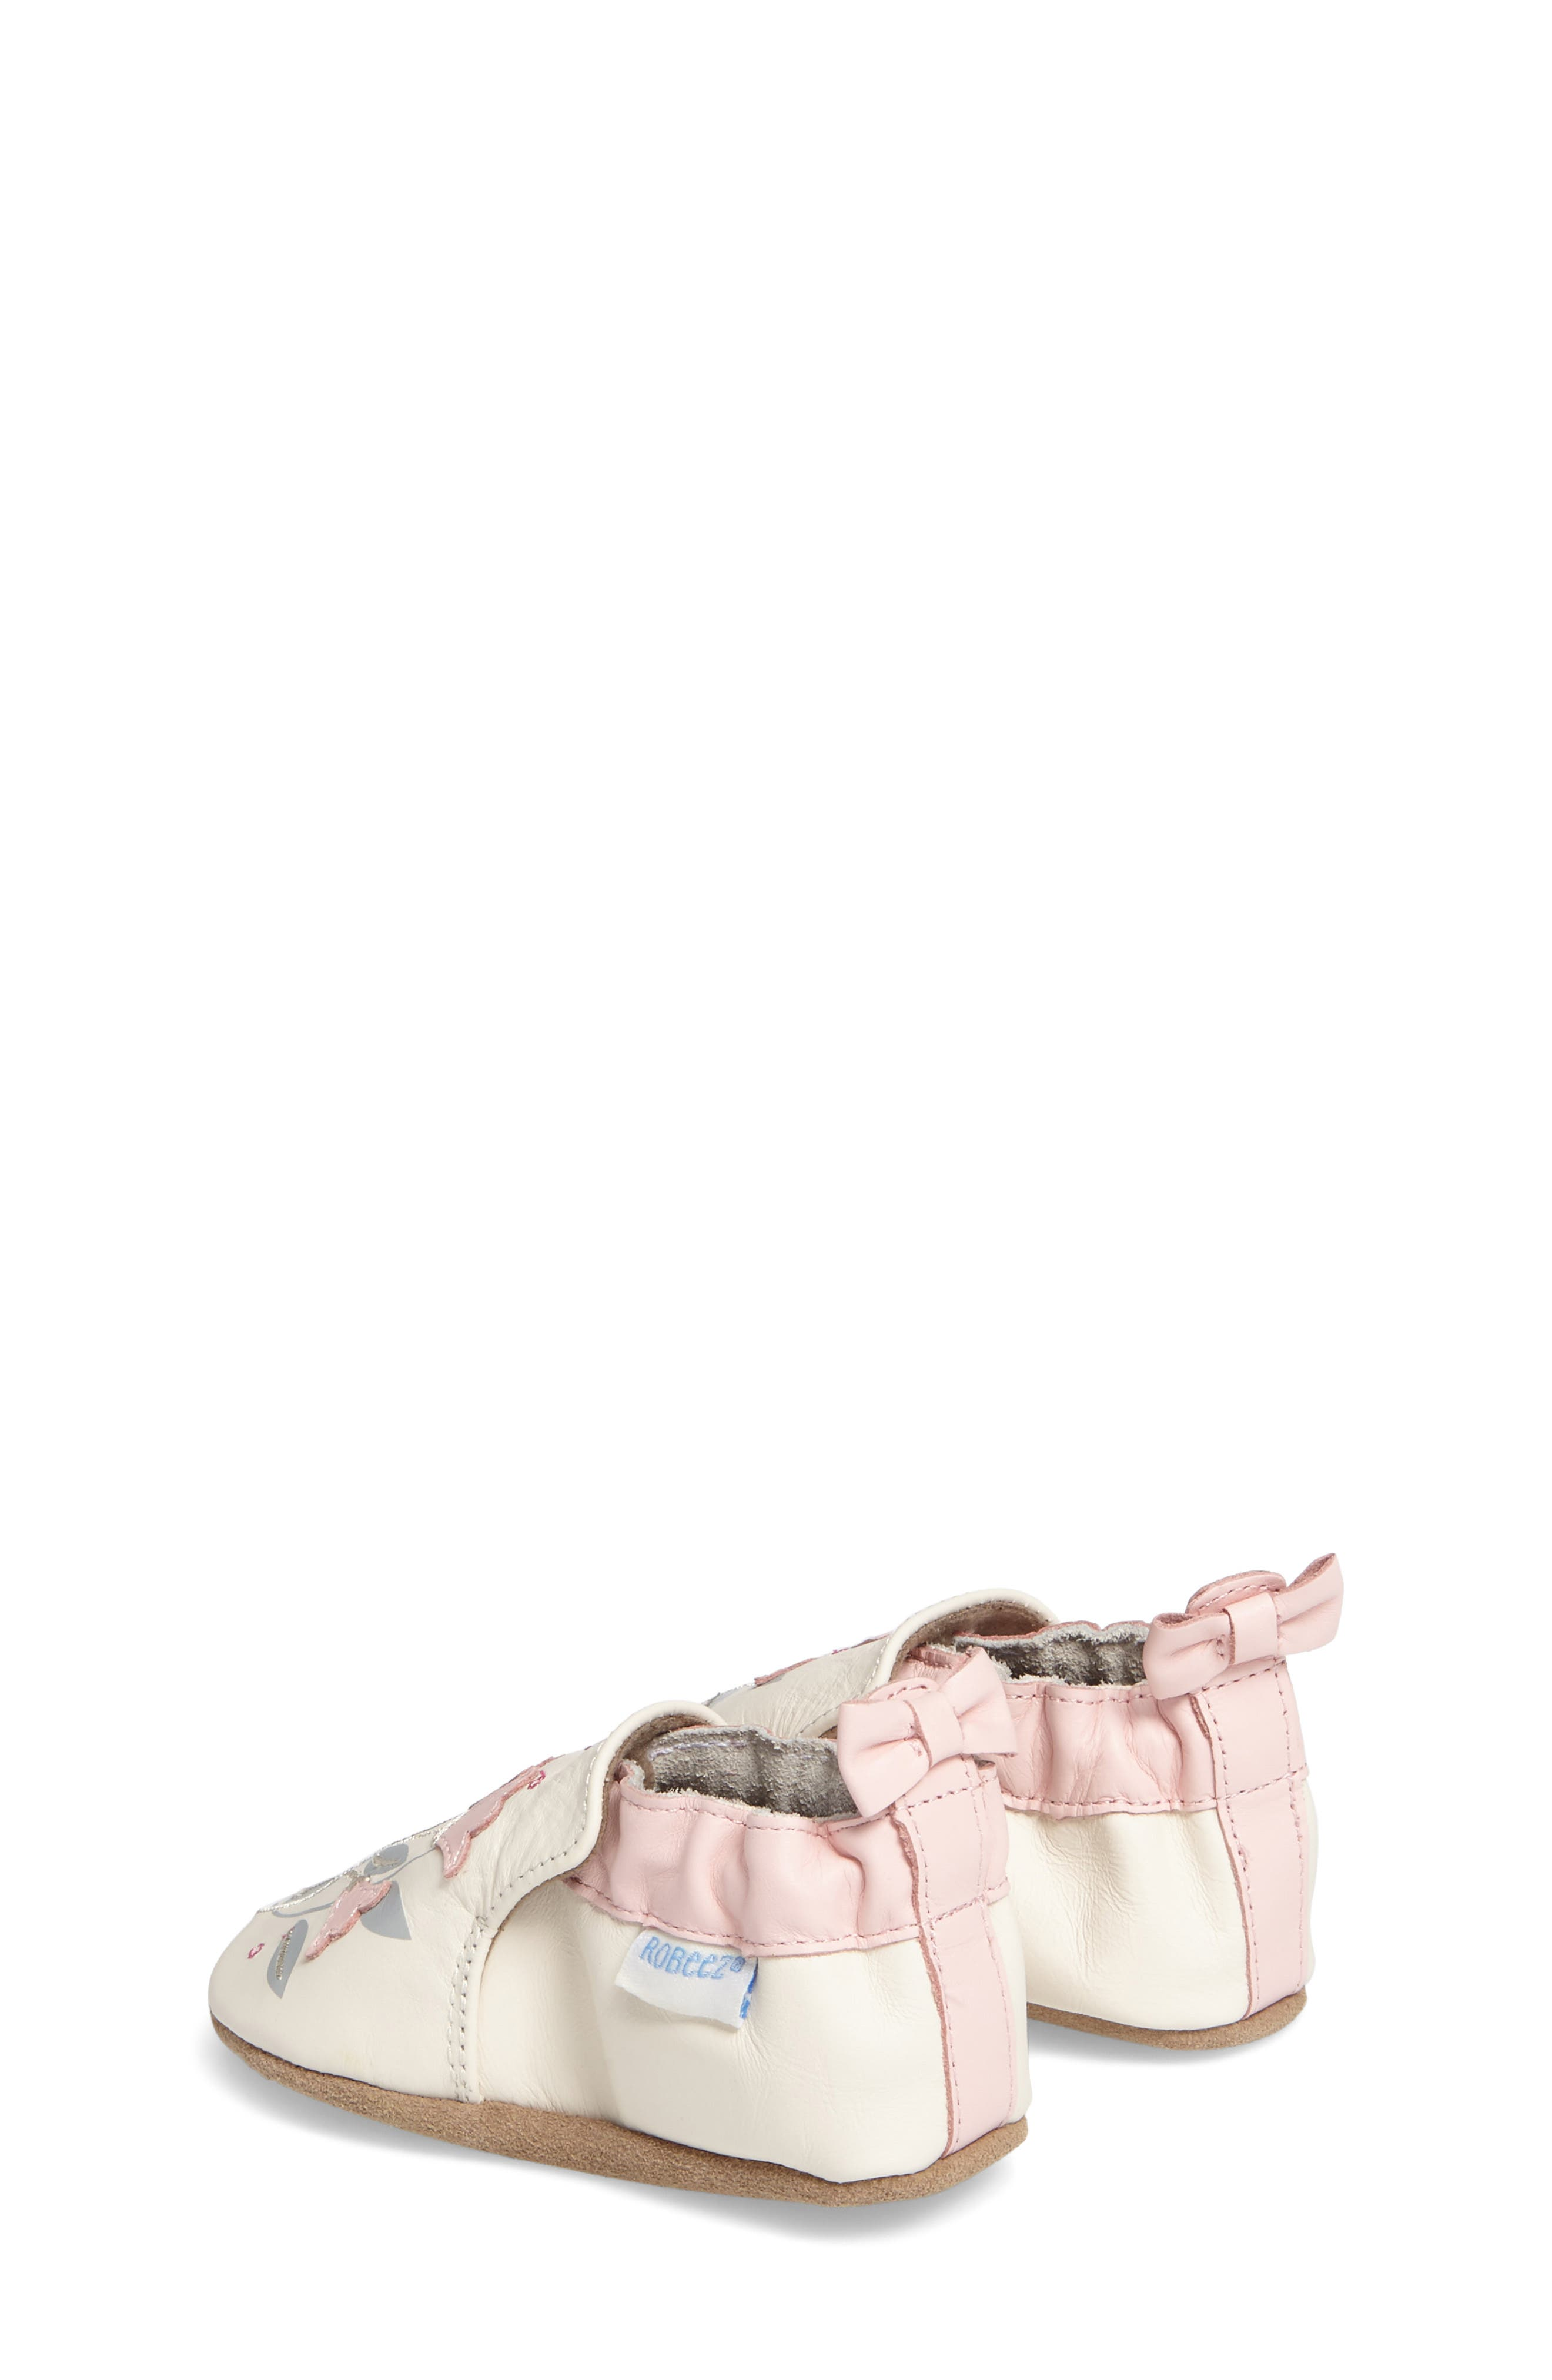 Rosealean Crib Shoe,                             Alternate thumbnail 2, color,                             Cream/ Pink Leather